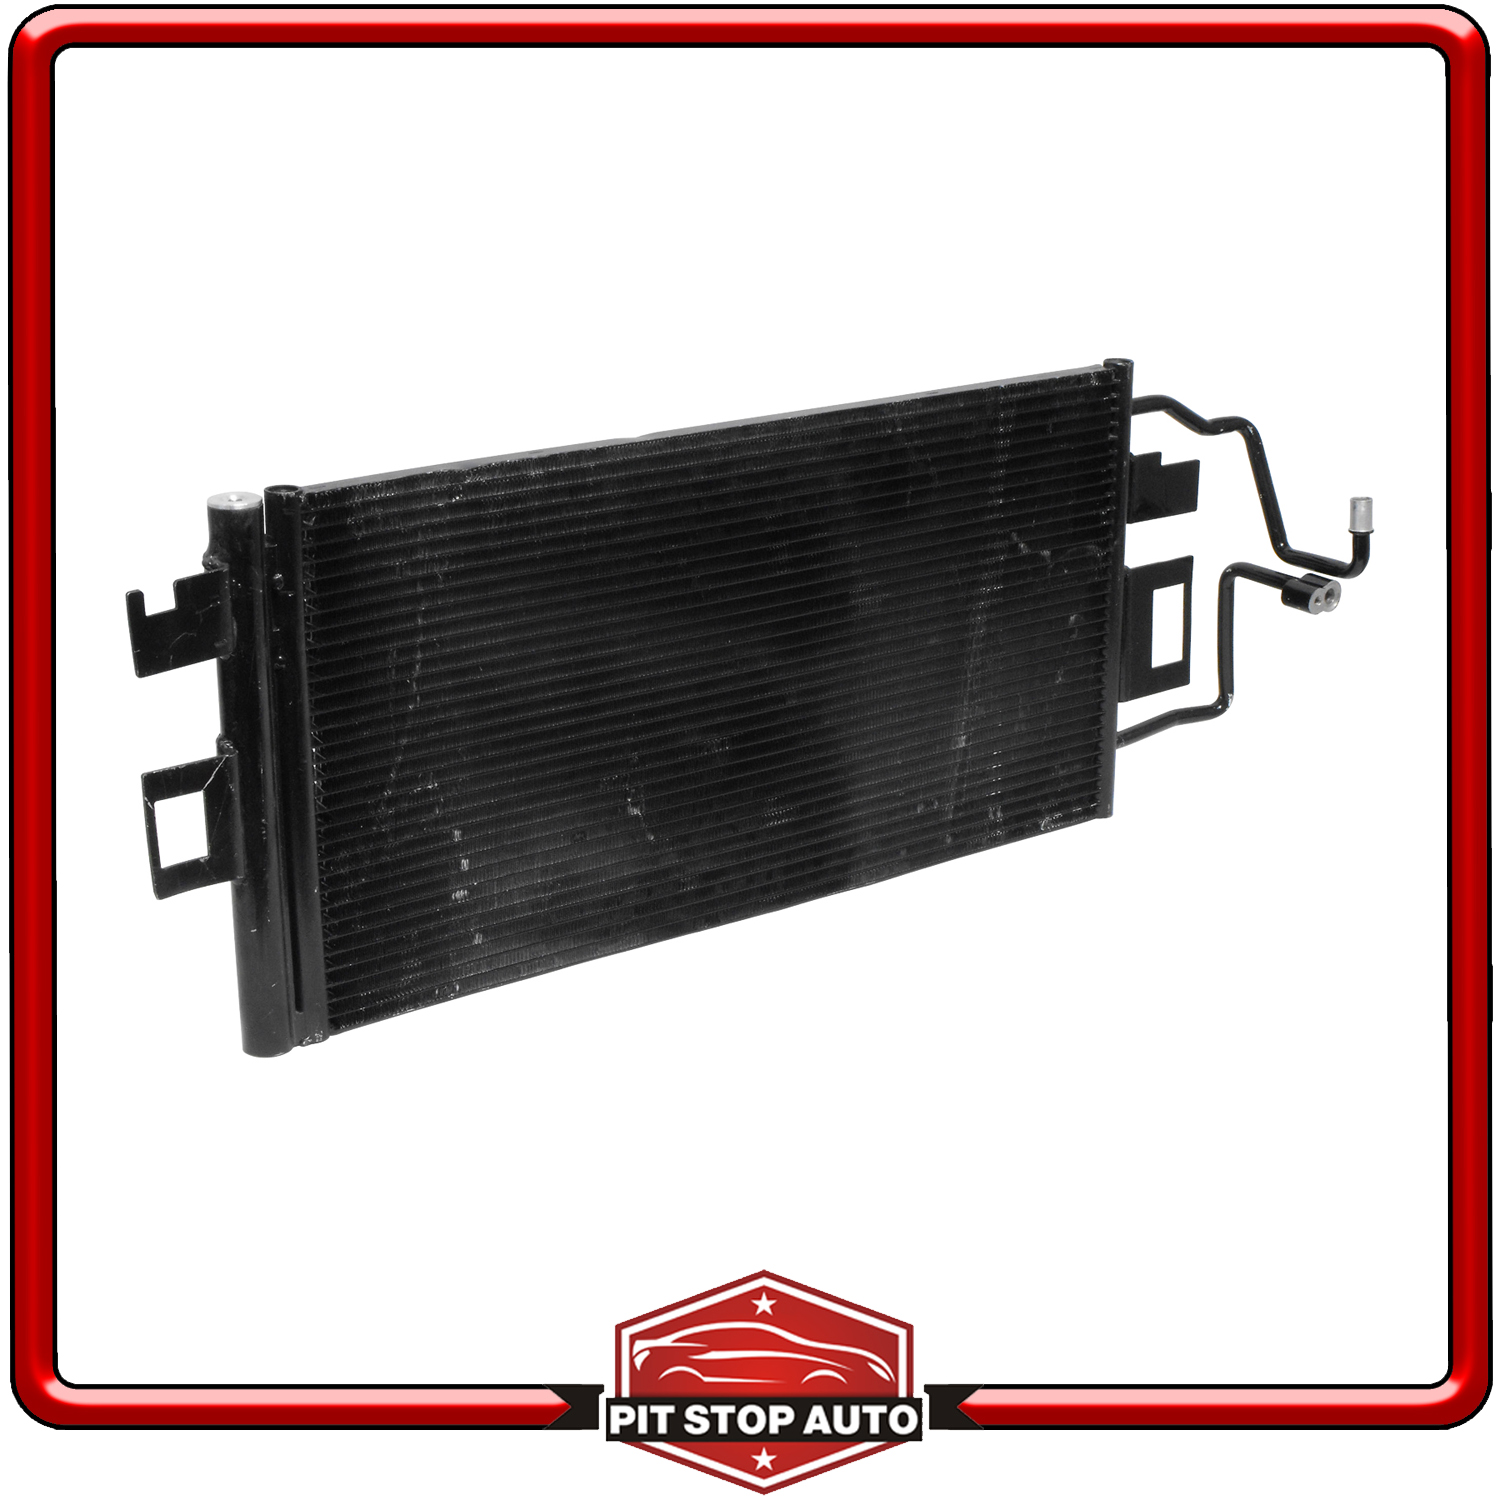 A//C Condenser For 06-11 Honda Civic Acura CSX Sedan Only Great Quality